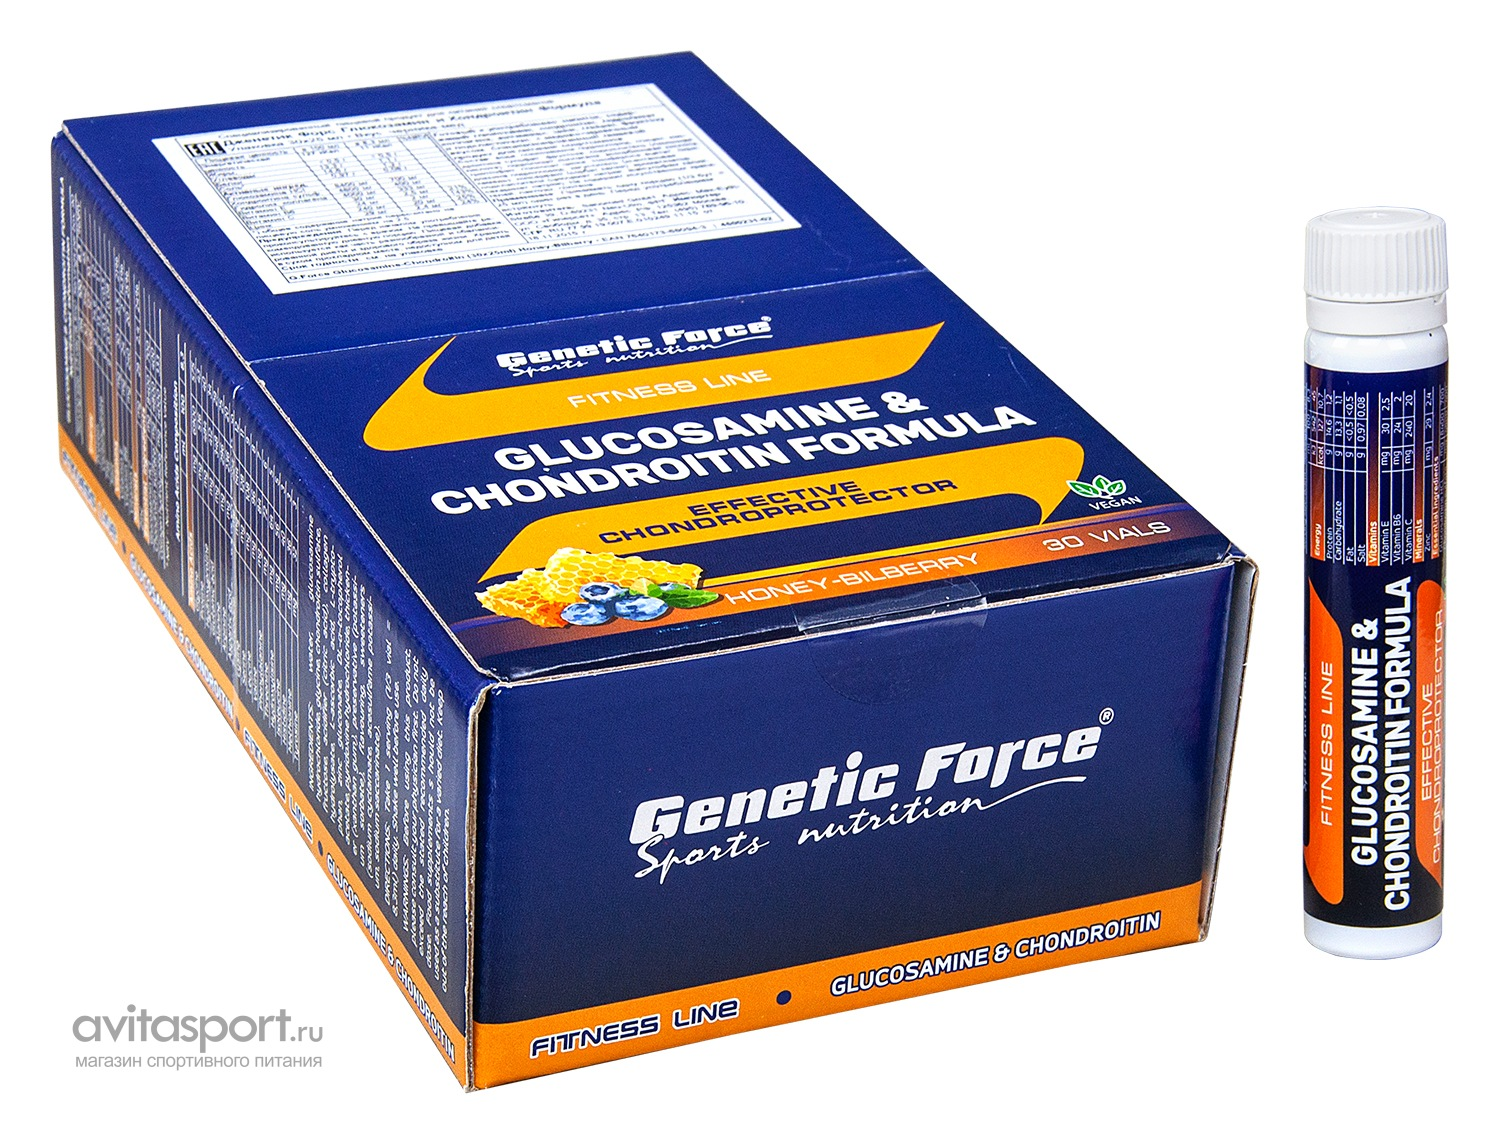 Genetic Force Glucosamine & Chondroitin Formula 30 ампул * 25 мл